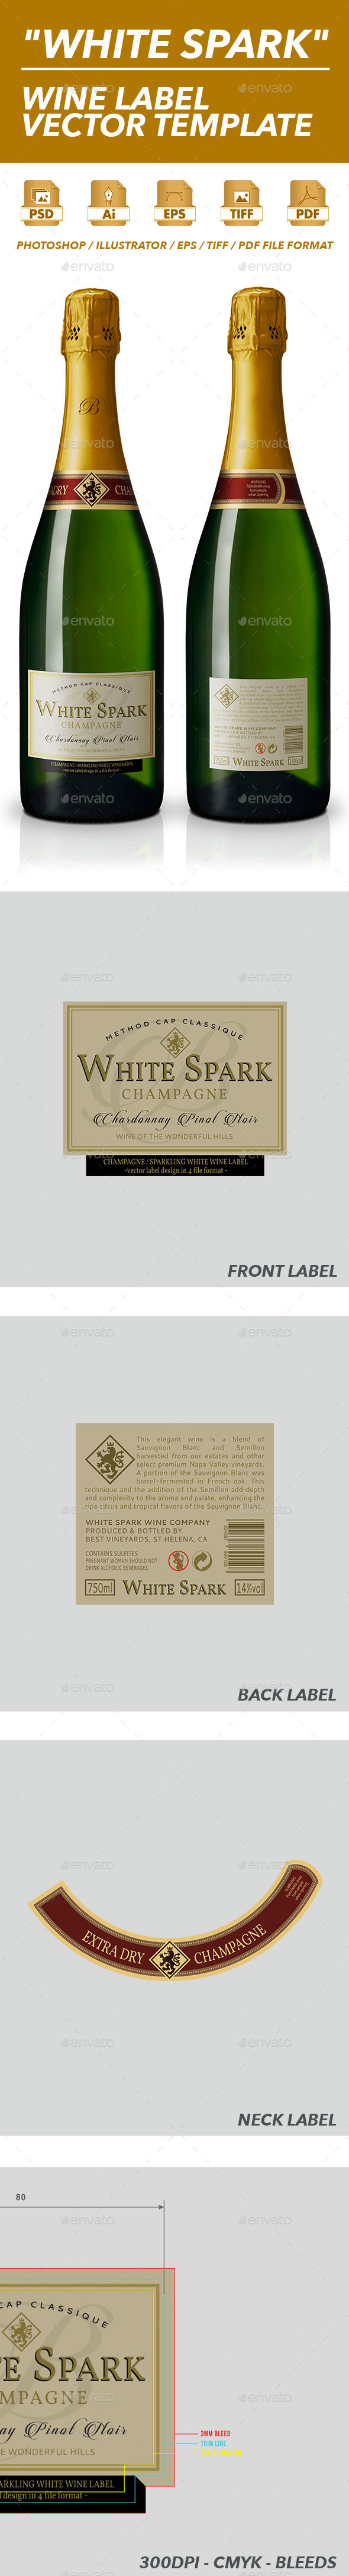 Sparkling Wine Label Vector Template - Packaging Print Templates